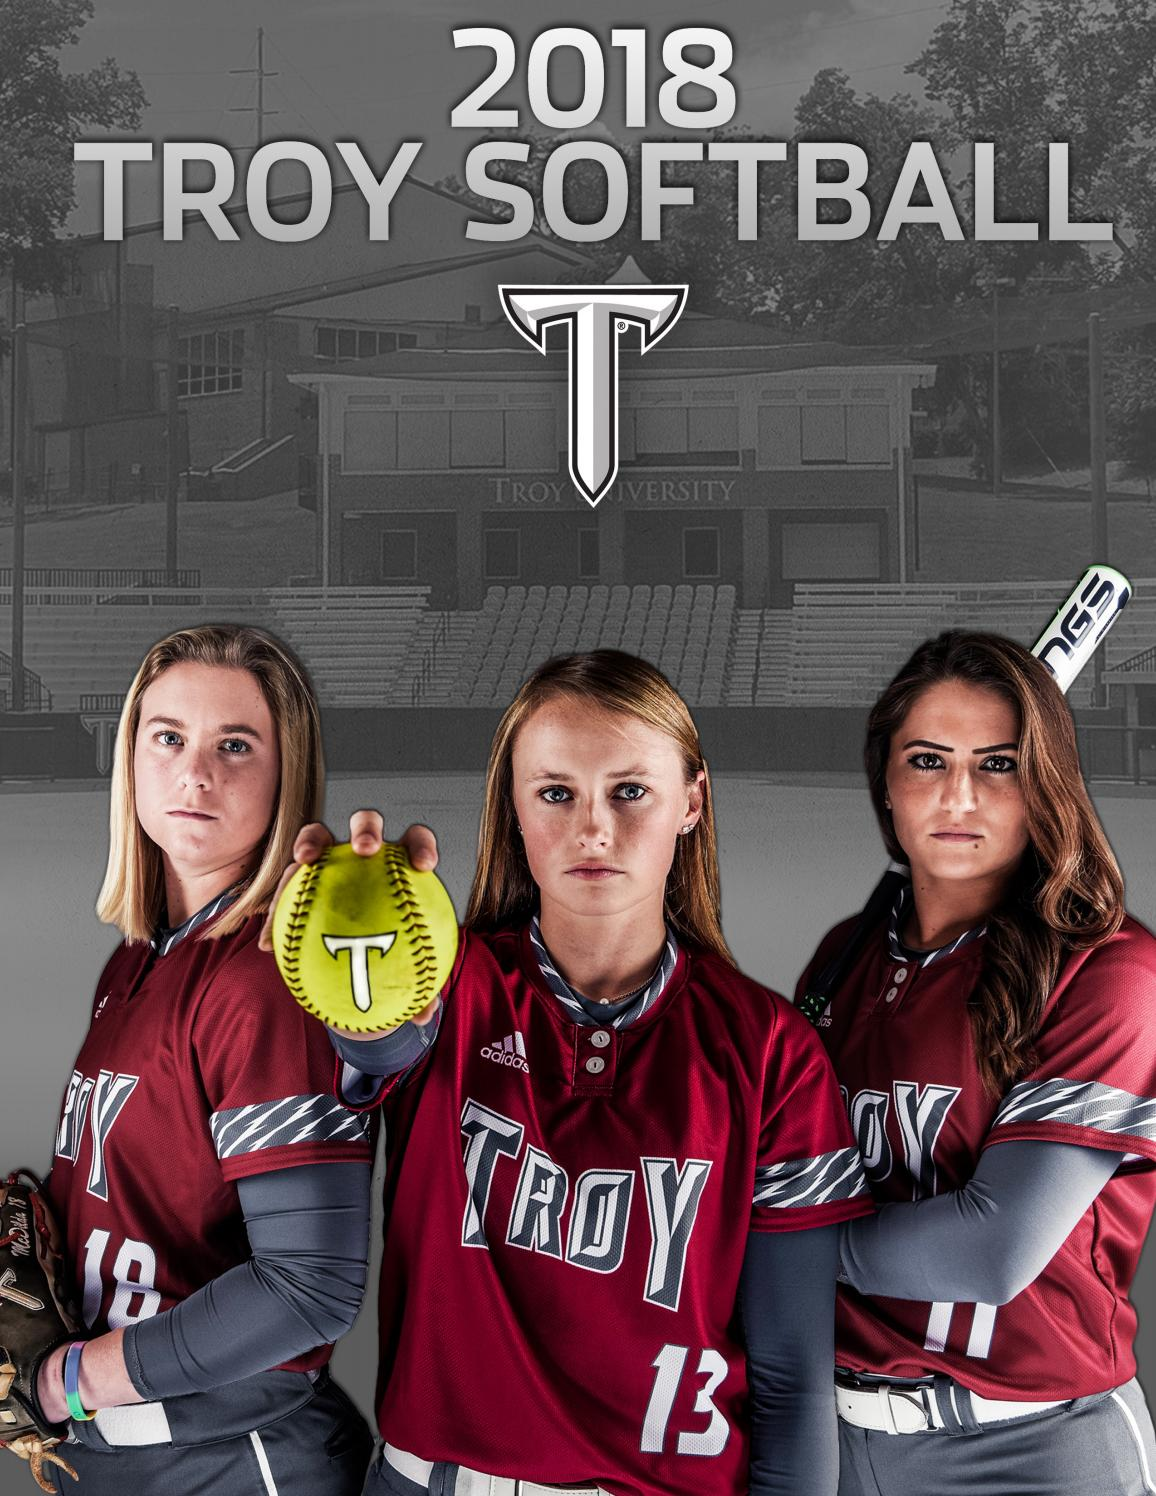 2018 Troy Softball Media Guide by